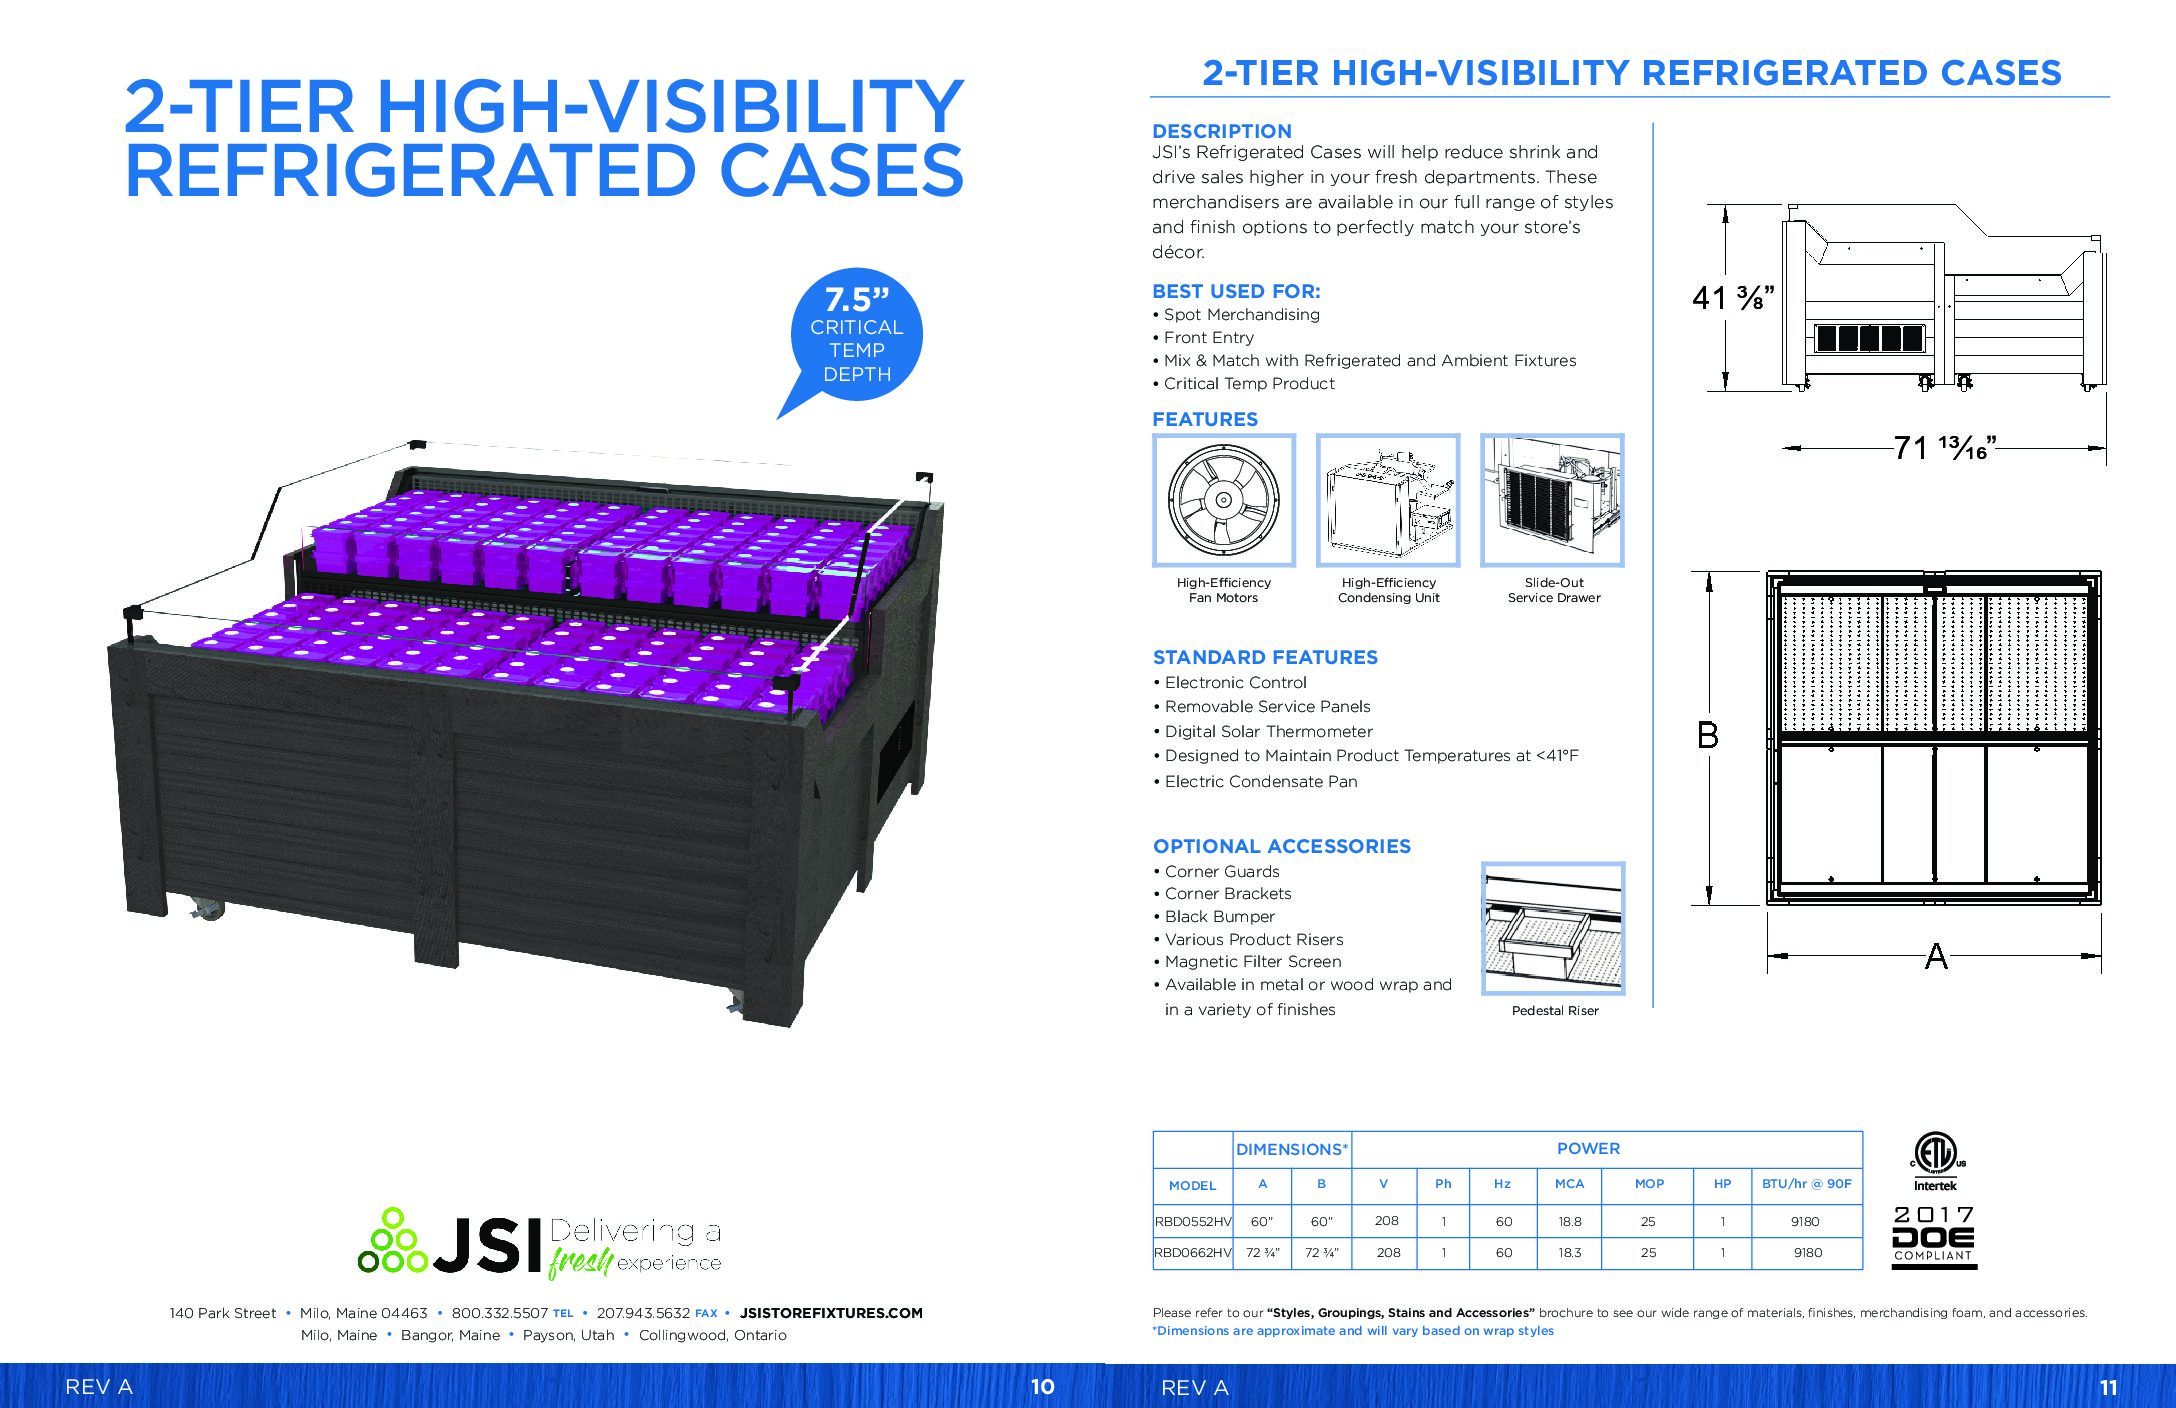 2-Tier High-Visibility Refrigerated Cases (PDF)